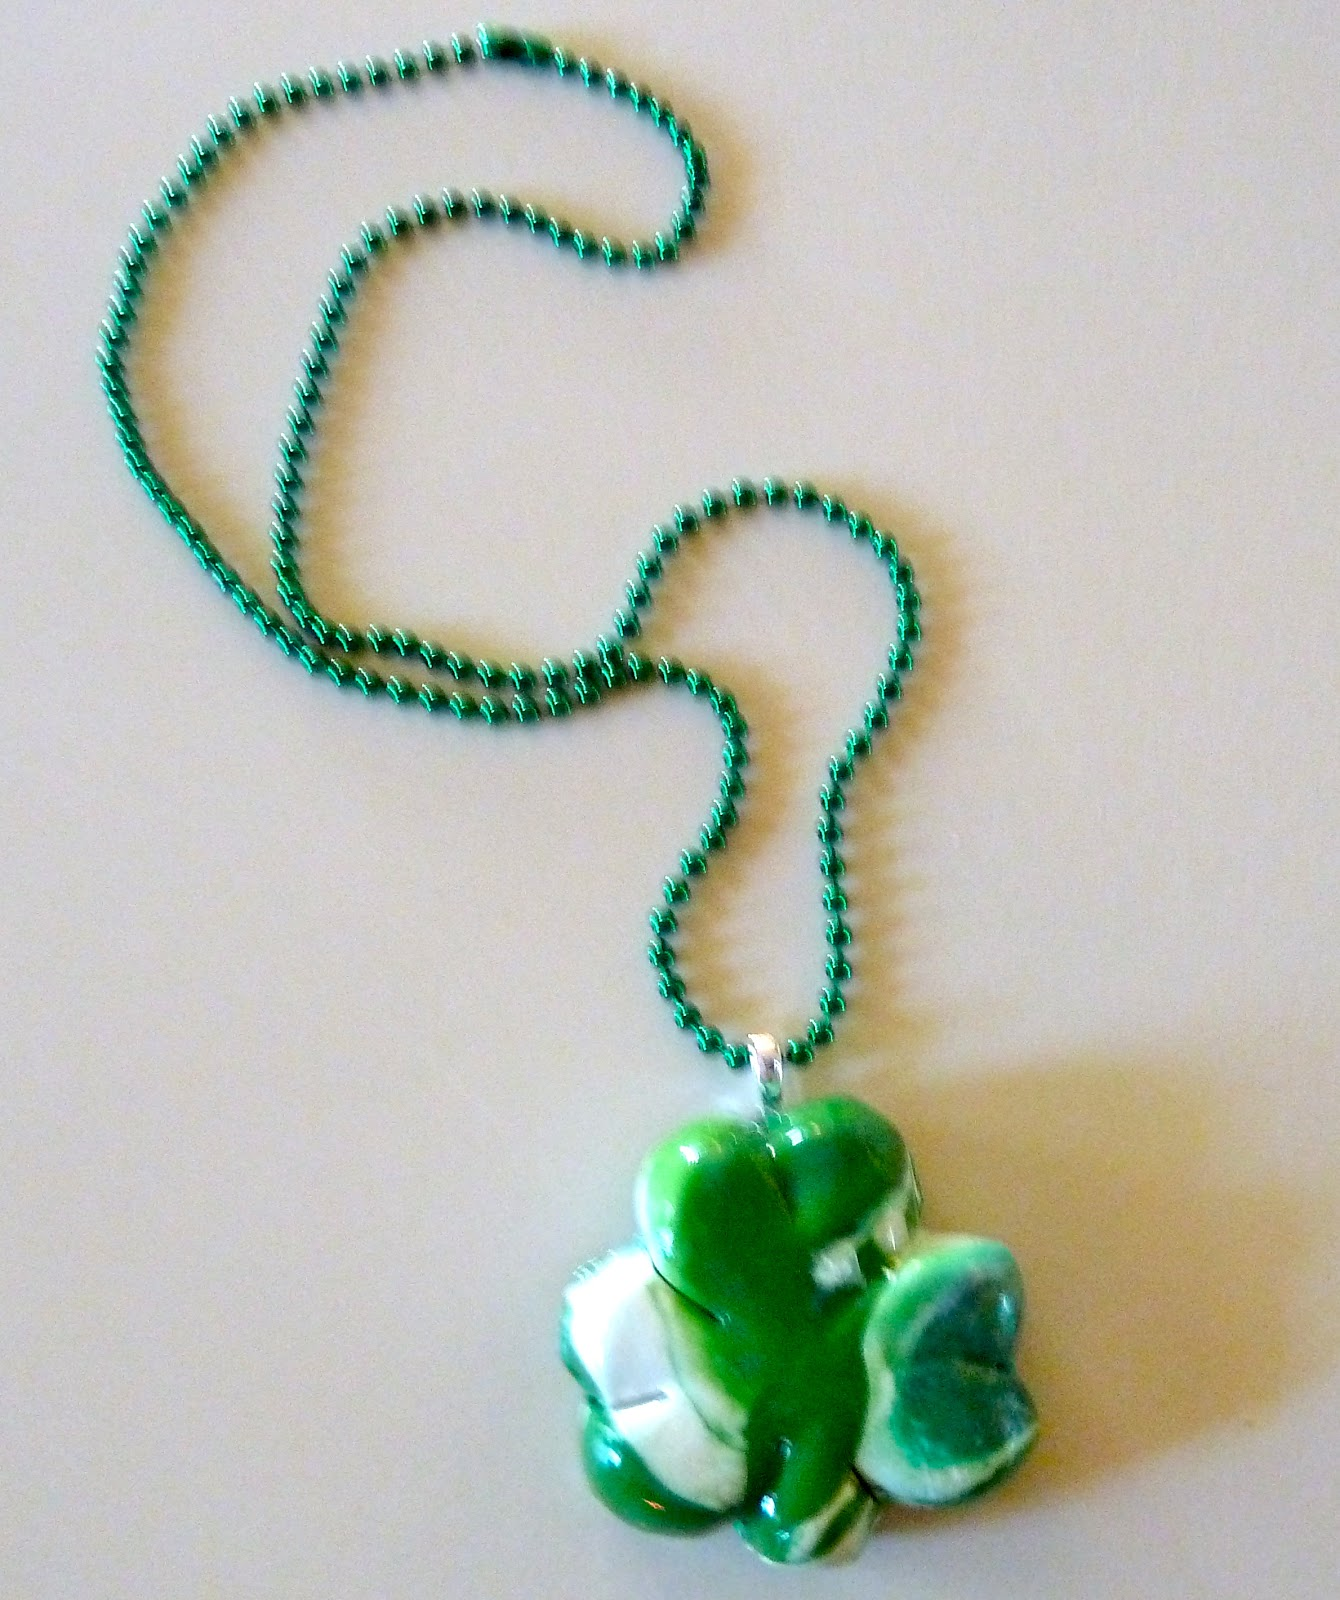 Make it easy crafts polymer clay shamrock pendant tutorial polymer clay shamrock pendant tutorial deck yourself out for st patricks day with this one of a kind shamrock pendant this makes a great teachers gift mozeypictures Image collections